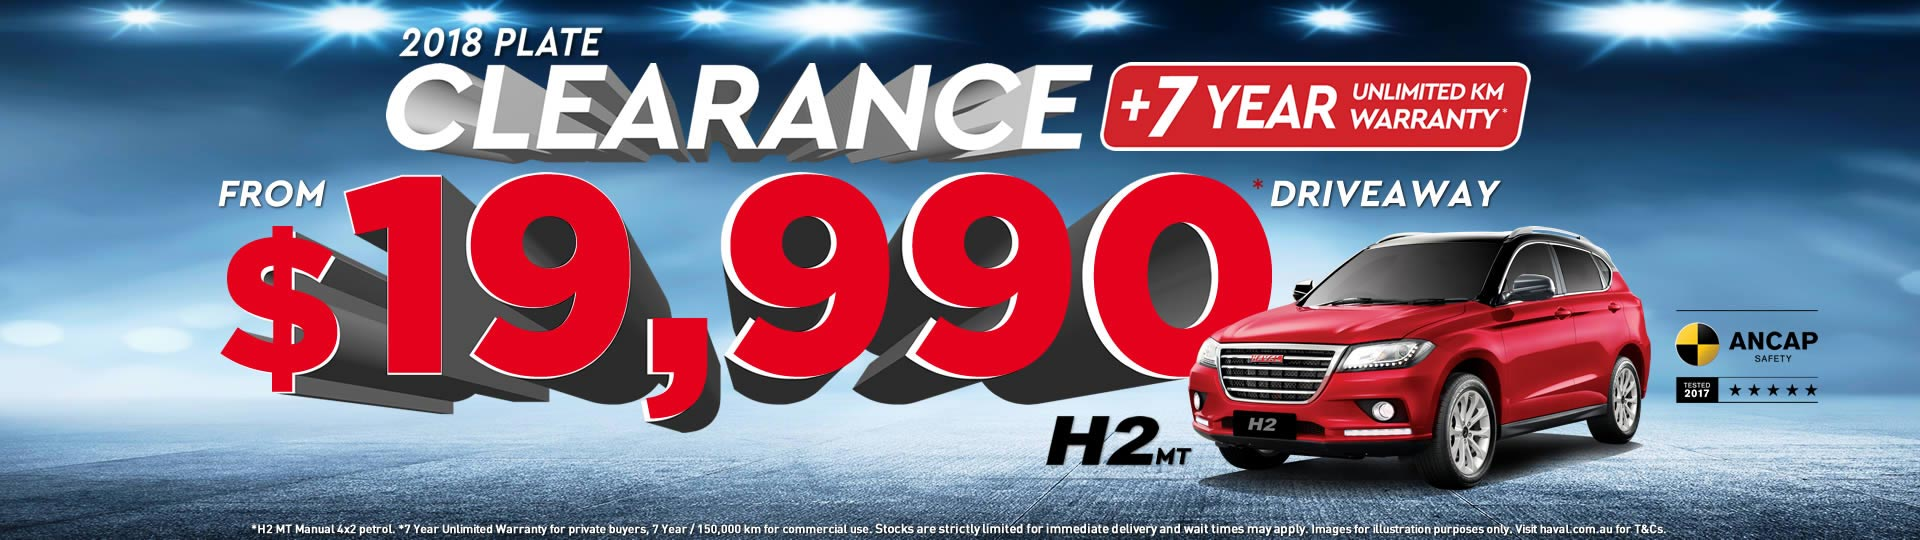 HAVAL 2018 Plate Clearance